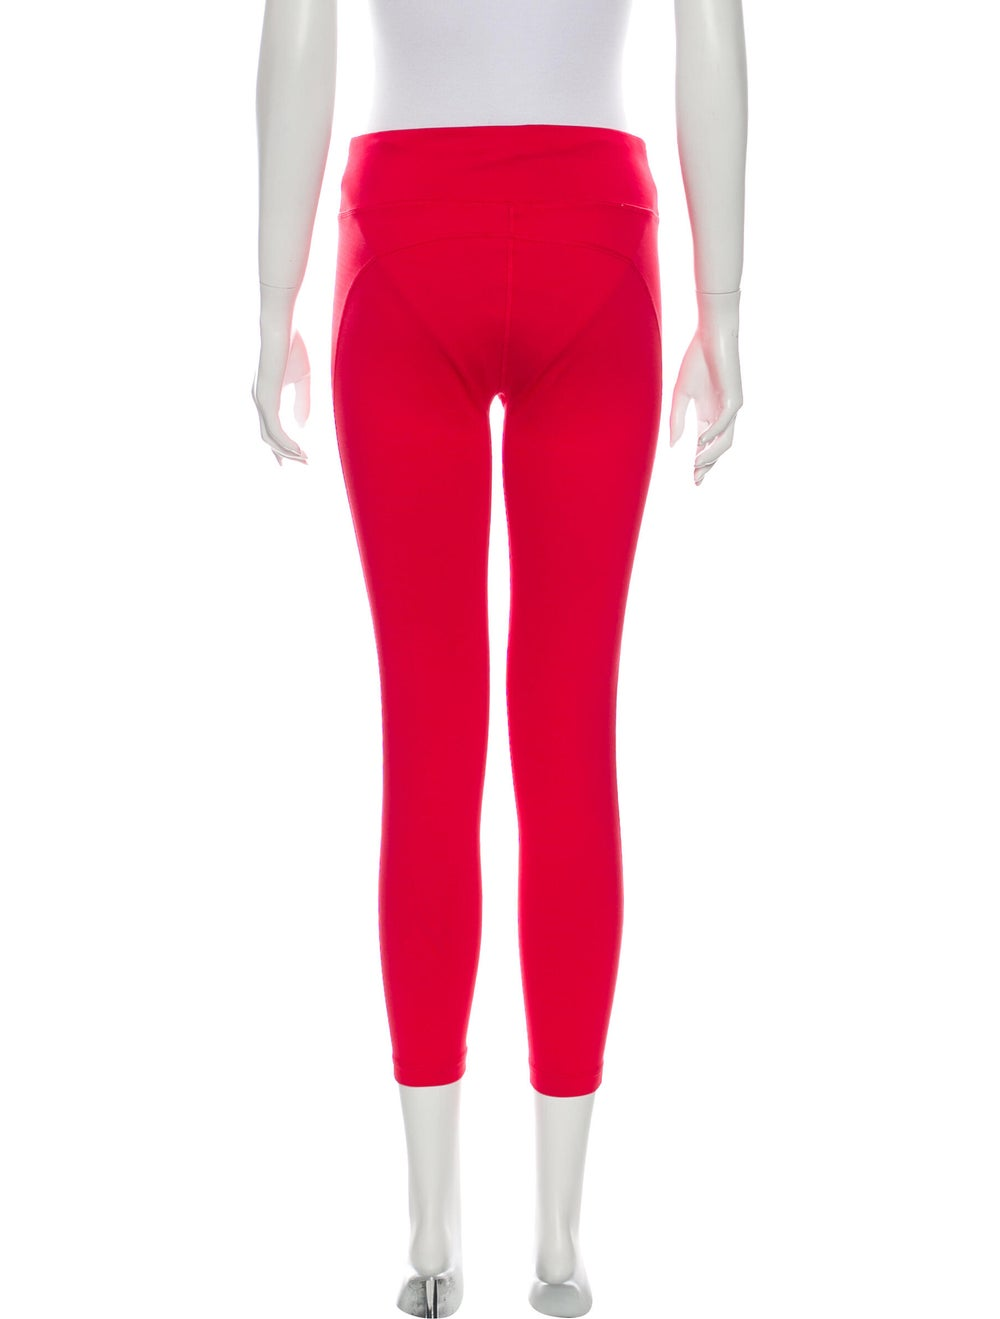 Outdoor Voices Sweatpants Red - image 3